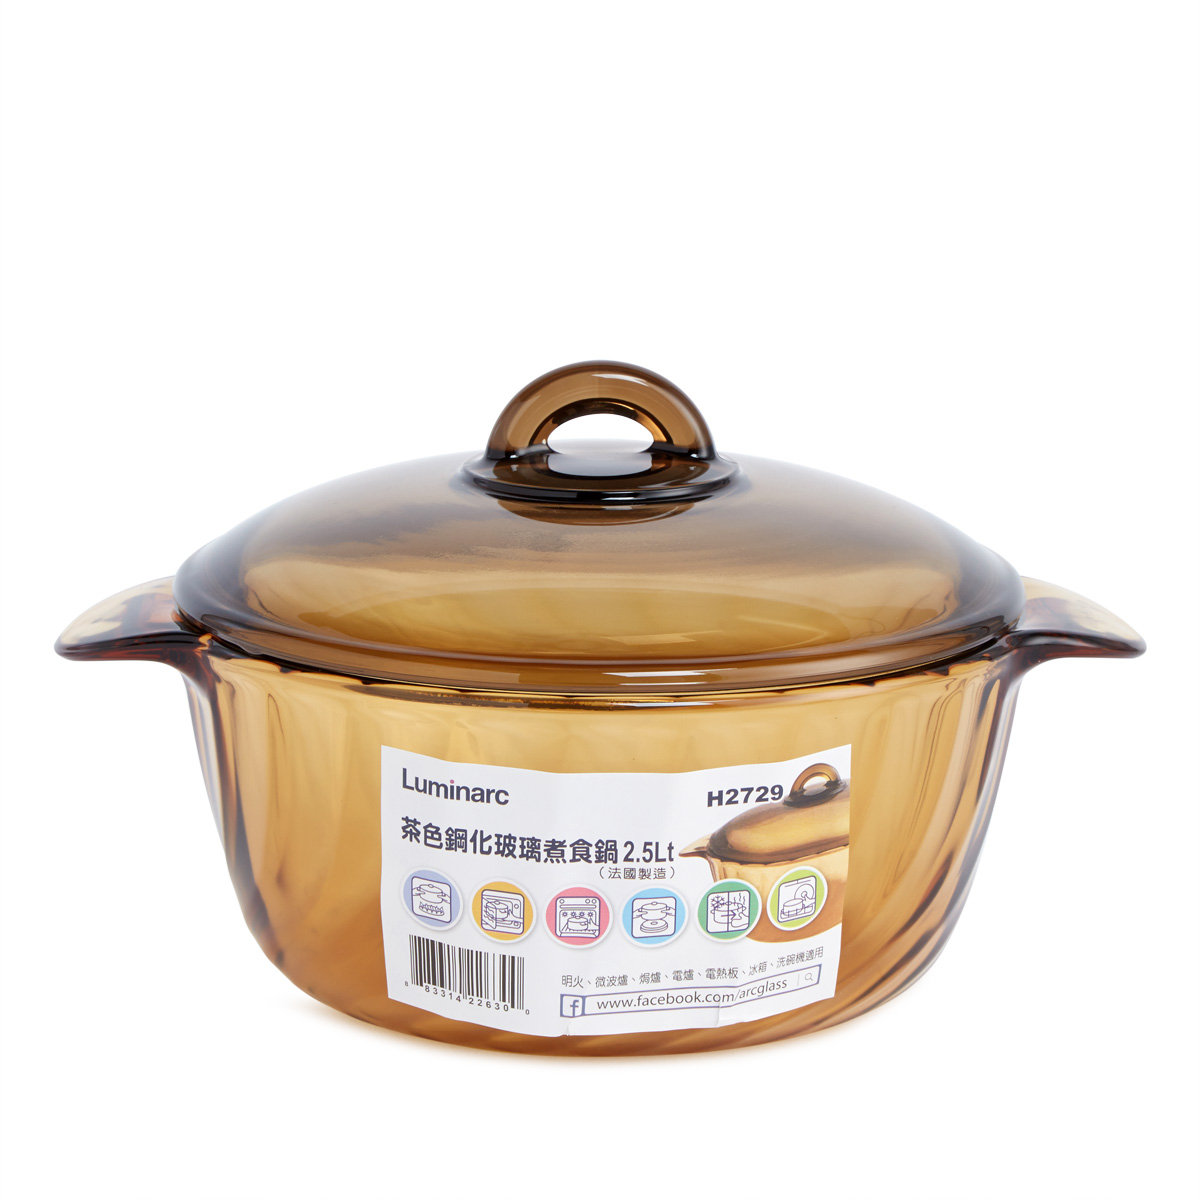 Tempered-Glass Amber Trianon Heat-resistant Glass Casserole with Lid - 2.5L